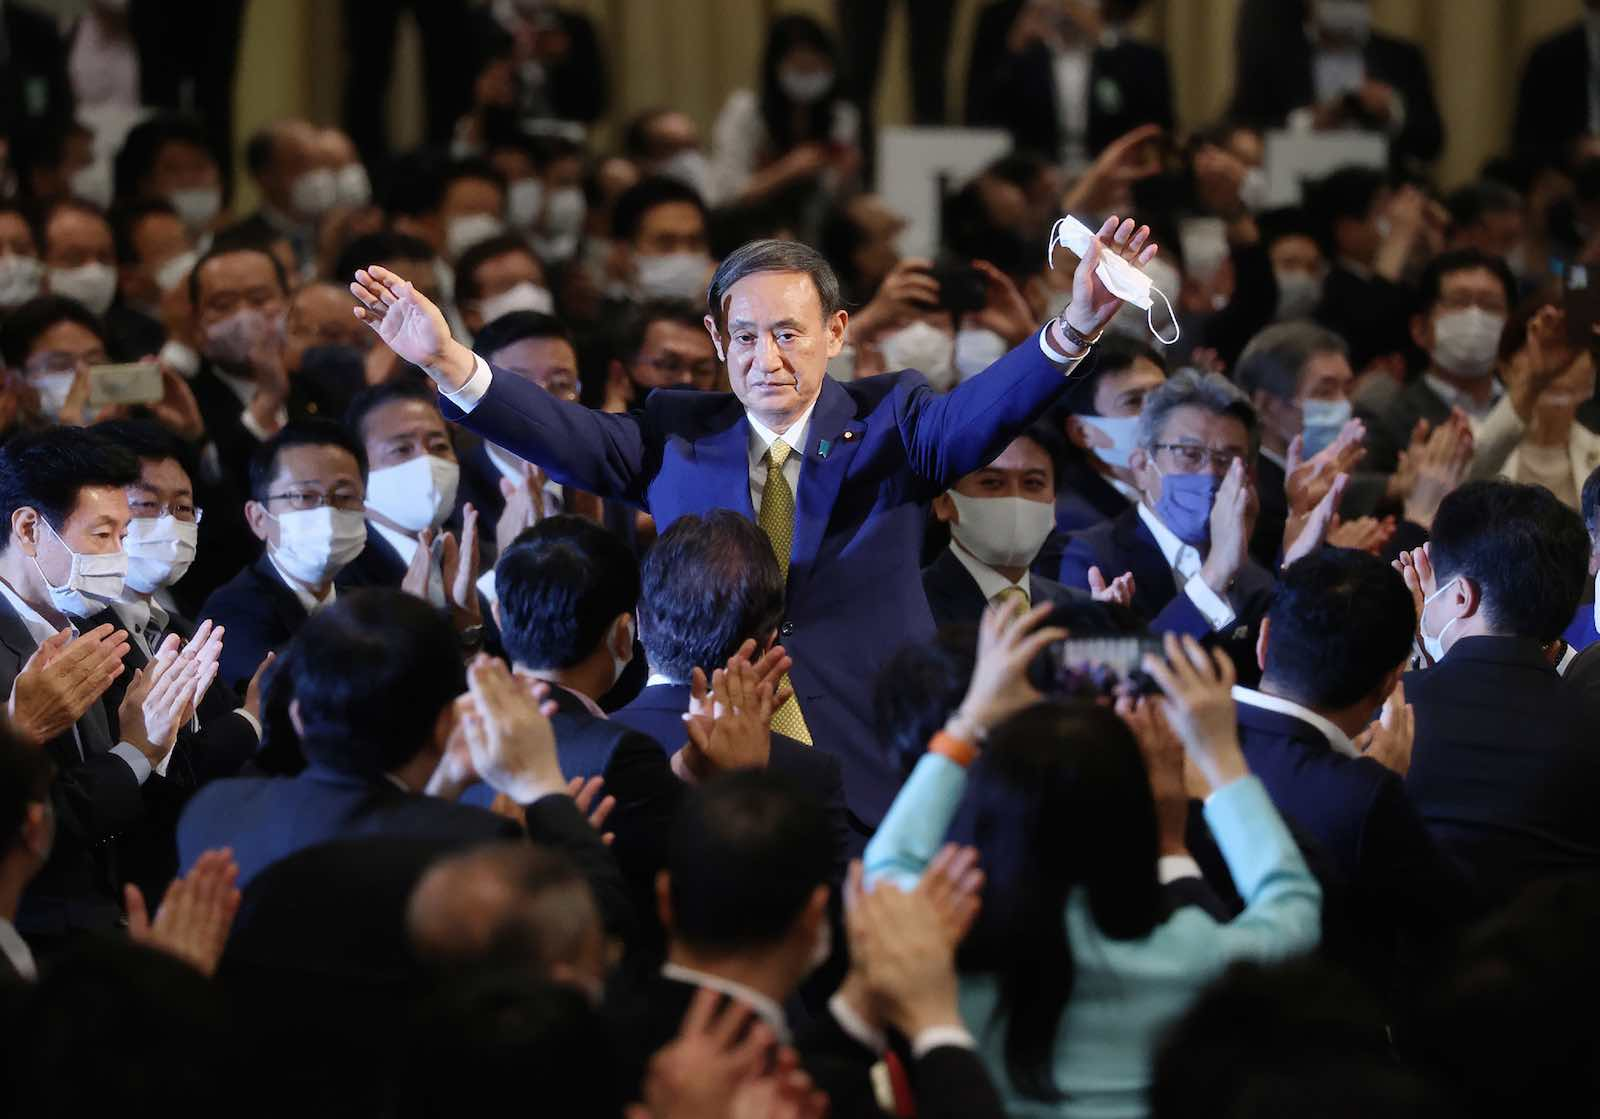 Japan's Chief Cabinet Secretary Yoshihide Suga reacts after he was elected as new head of Japan's ruling Liberal Democratic Party on Monday (AFP via Getty Images)